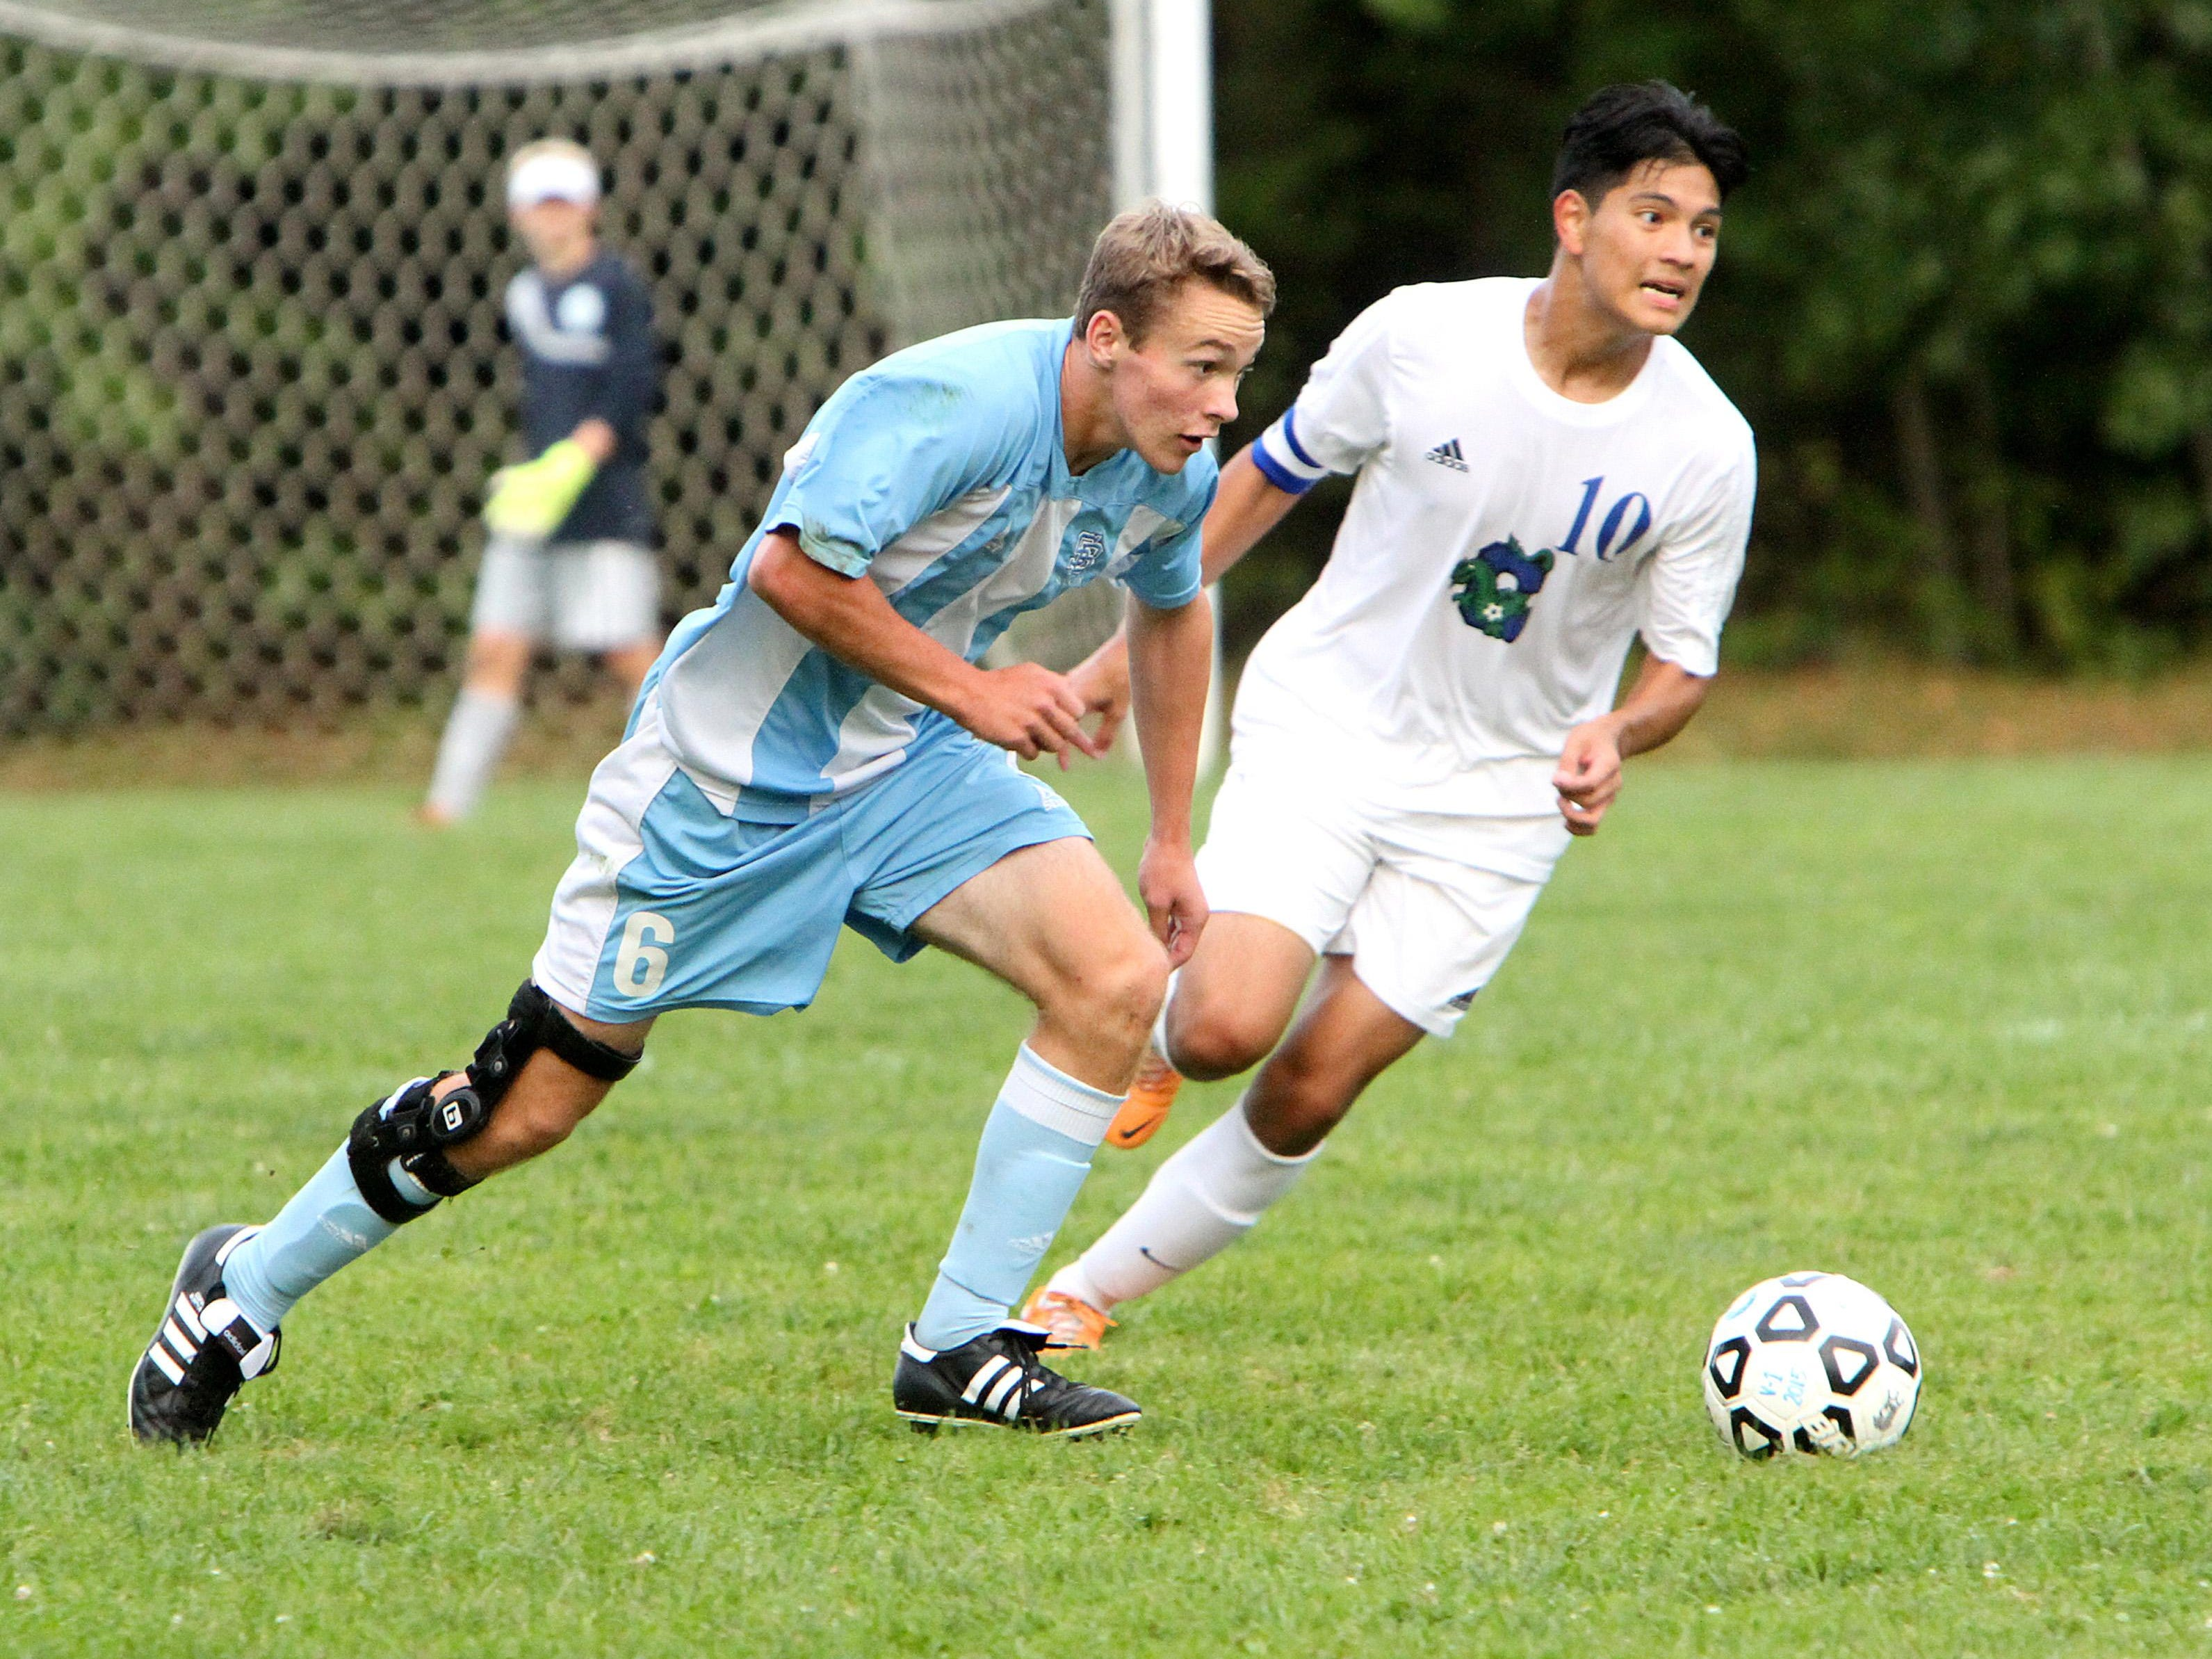 South Burlington's Patrick O'Hara looks up field for a teammate during the Rebels' 3-2 overtime win over Colchester. O'Hara scored the game winner with under five seconds left in overtime.